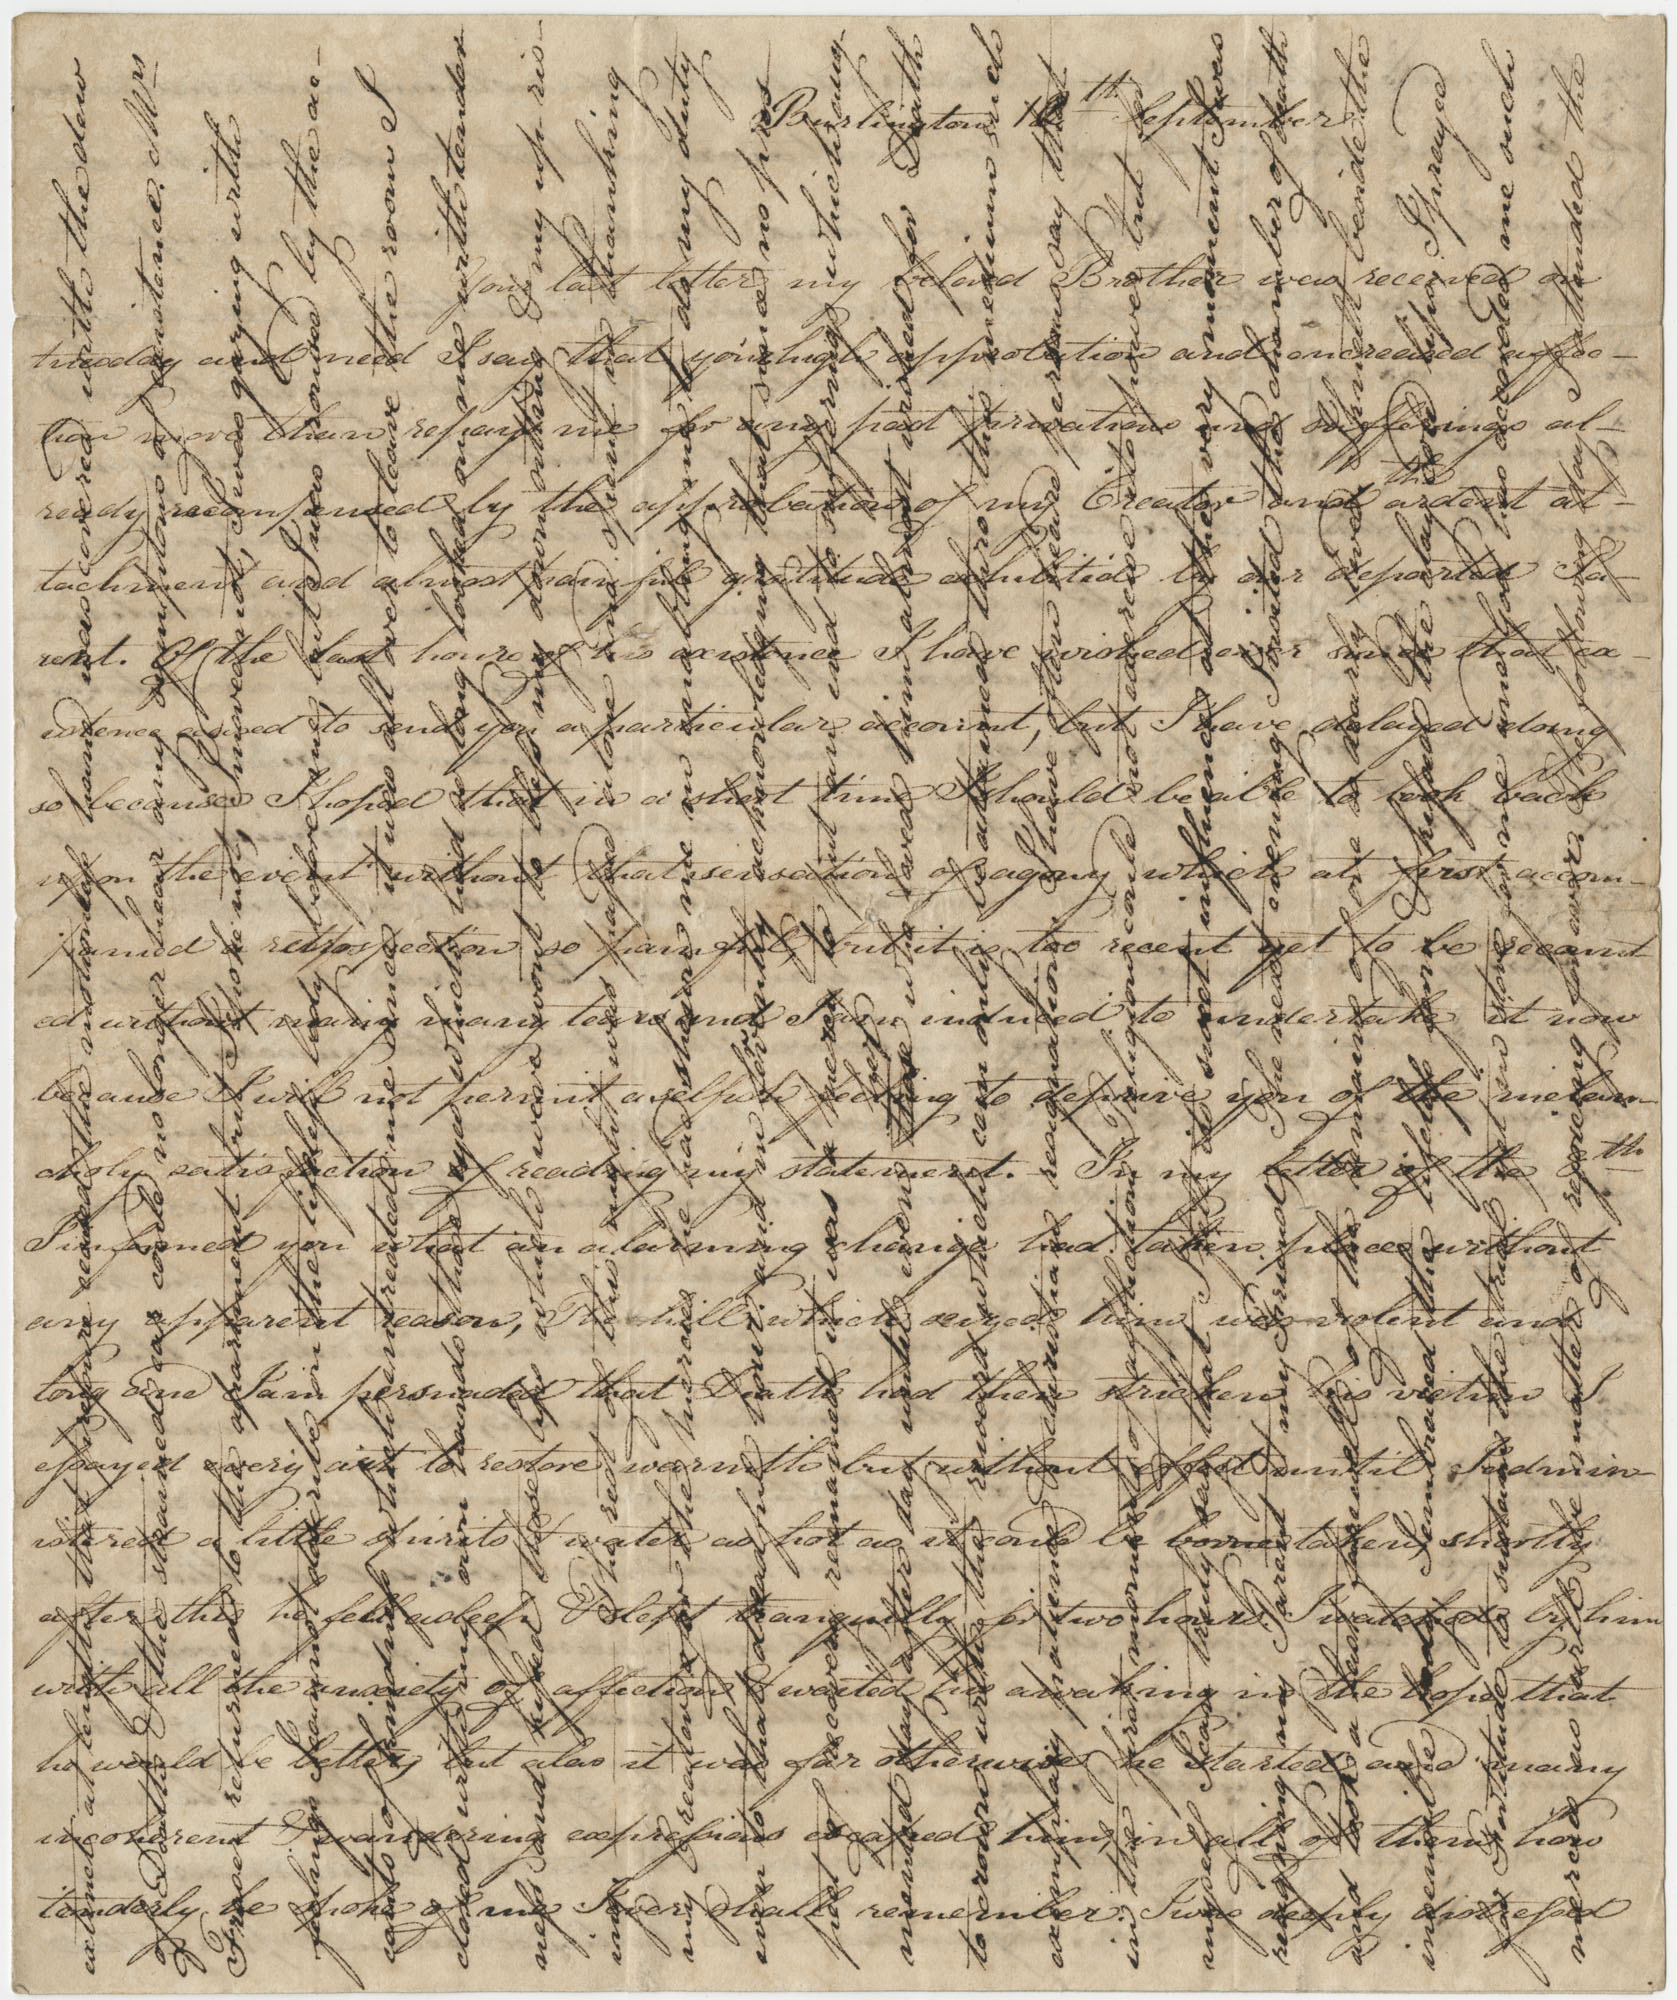 Letter to Thomas S. Grimke from his sister, Sarah M. Grimke,  September 1819